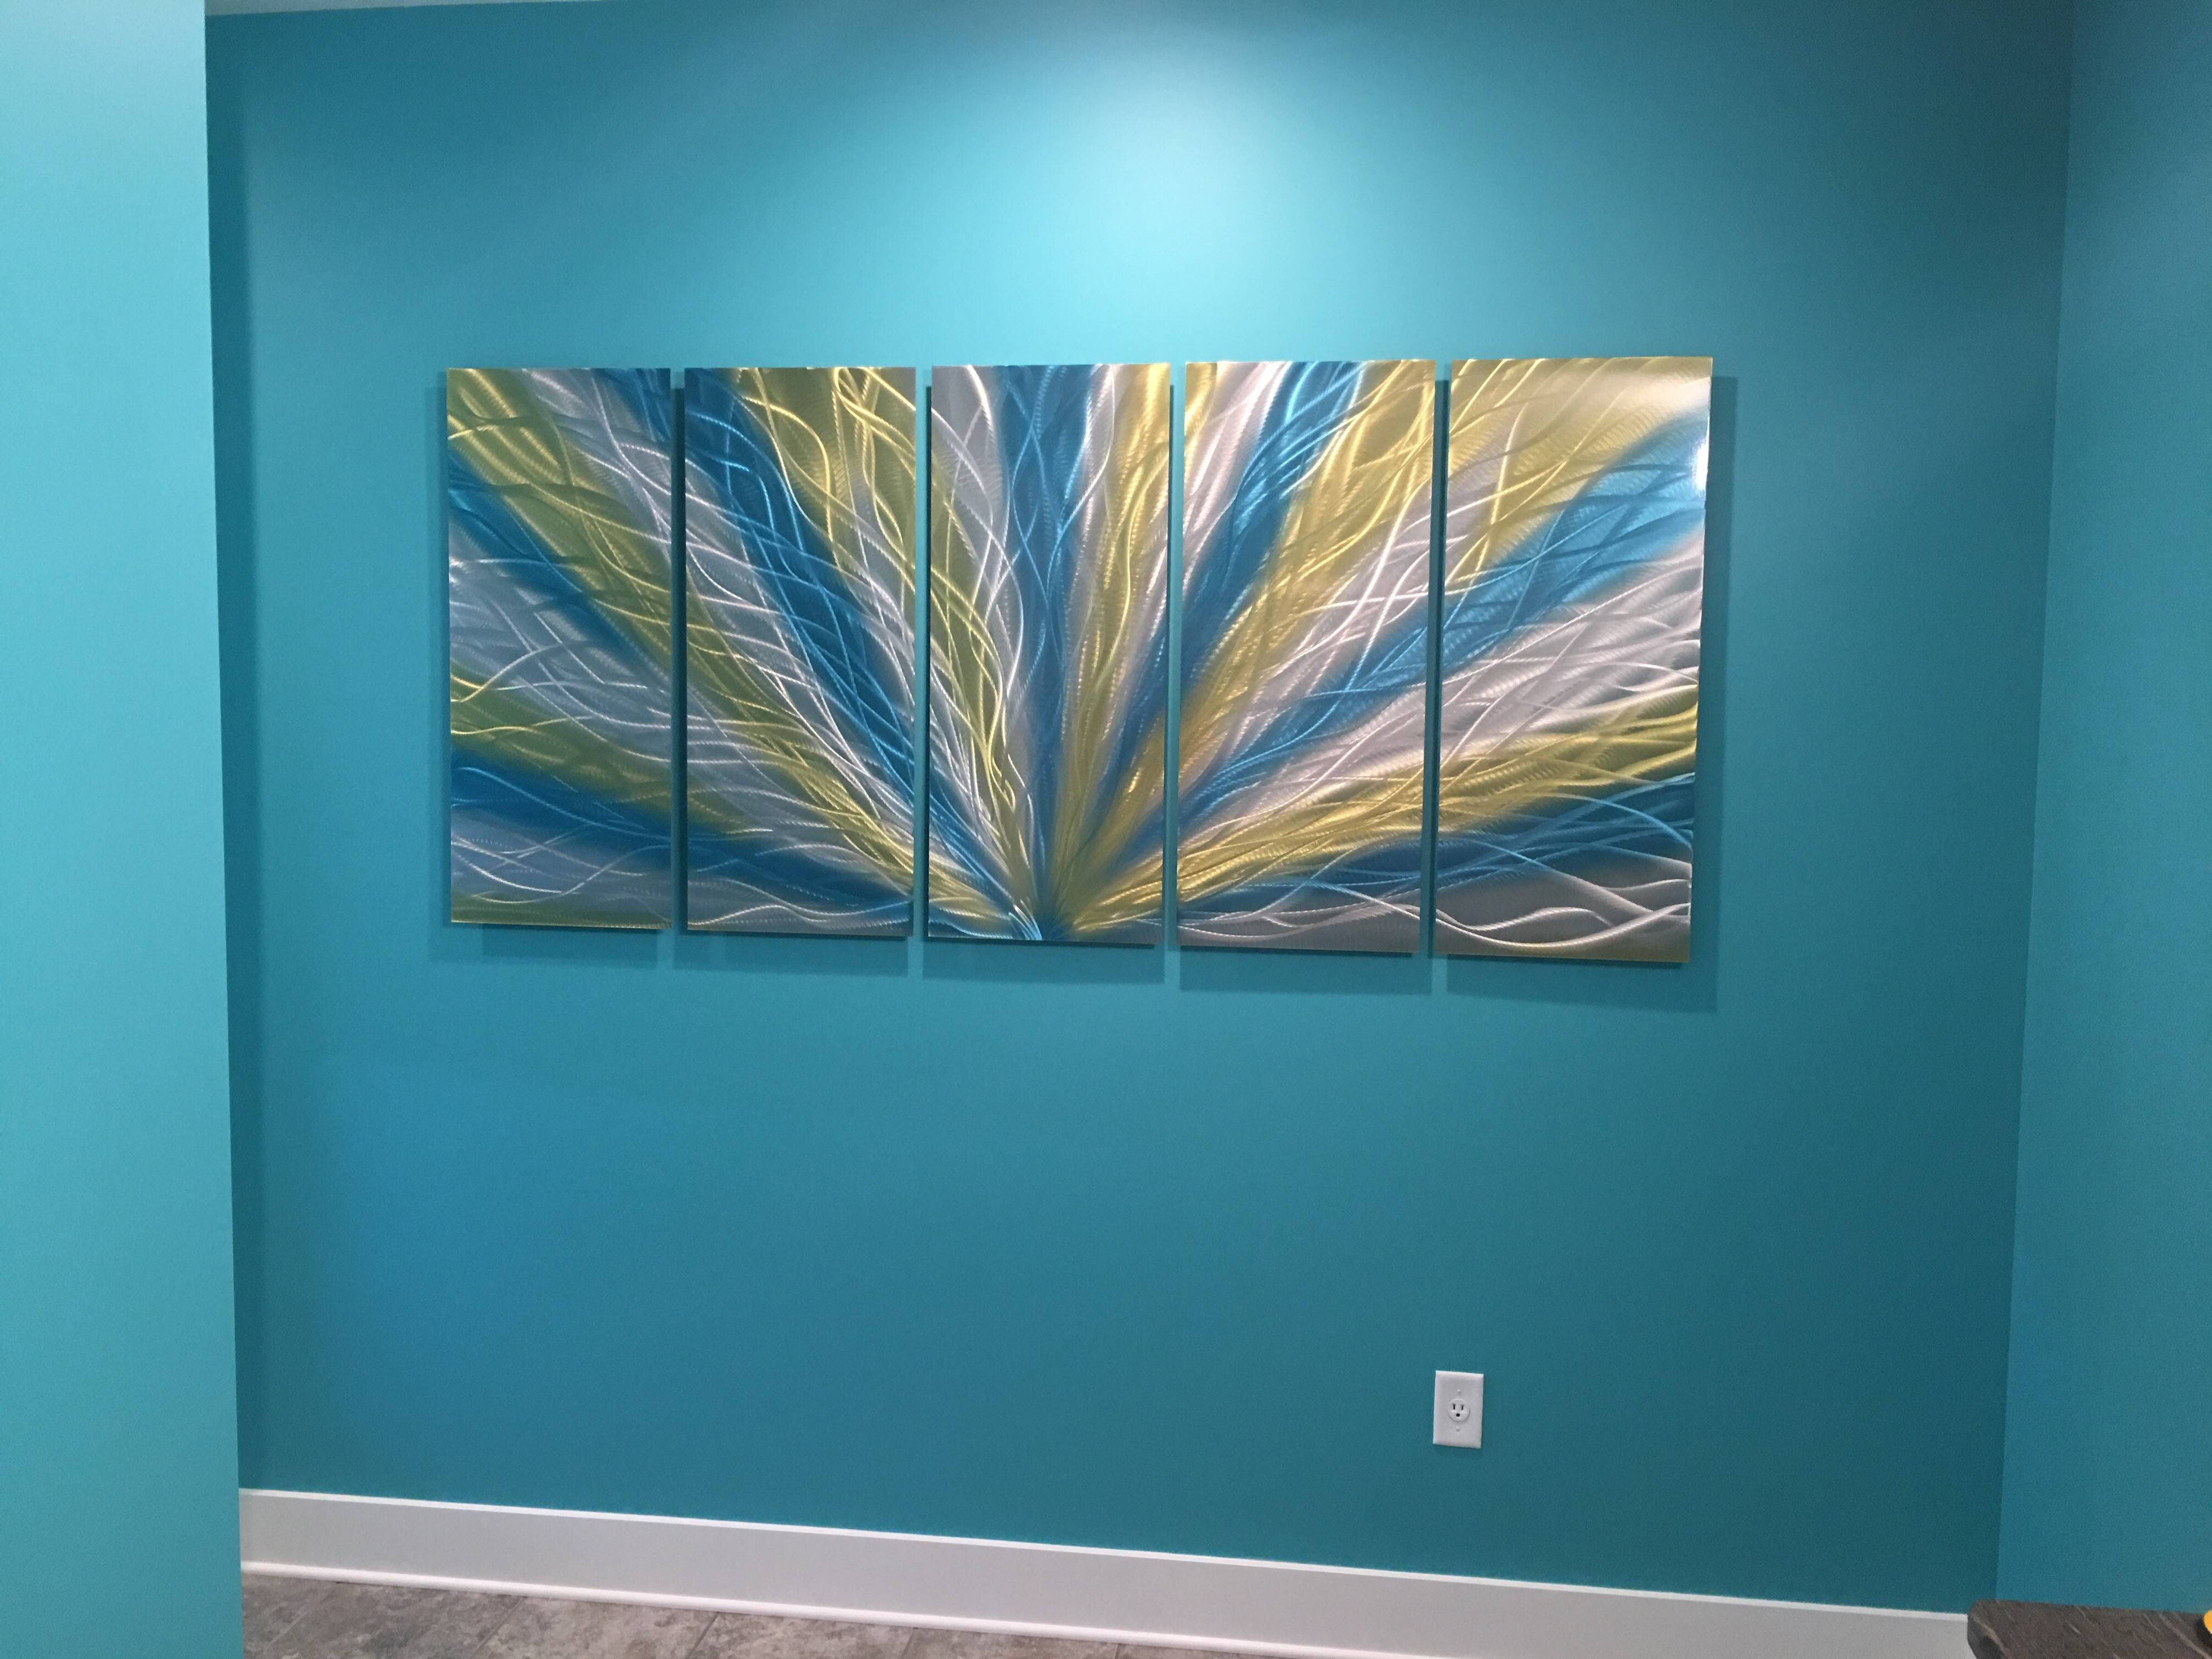 Radiance Blue Yellow 36X79 – Metal Wall Art Abstract Sculpture In 2018 Yellow And Blue Wall Art (View 9 of 20)